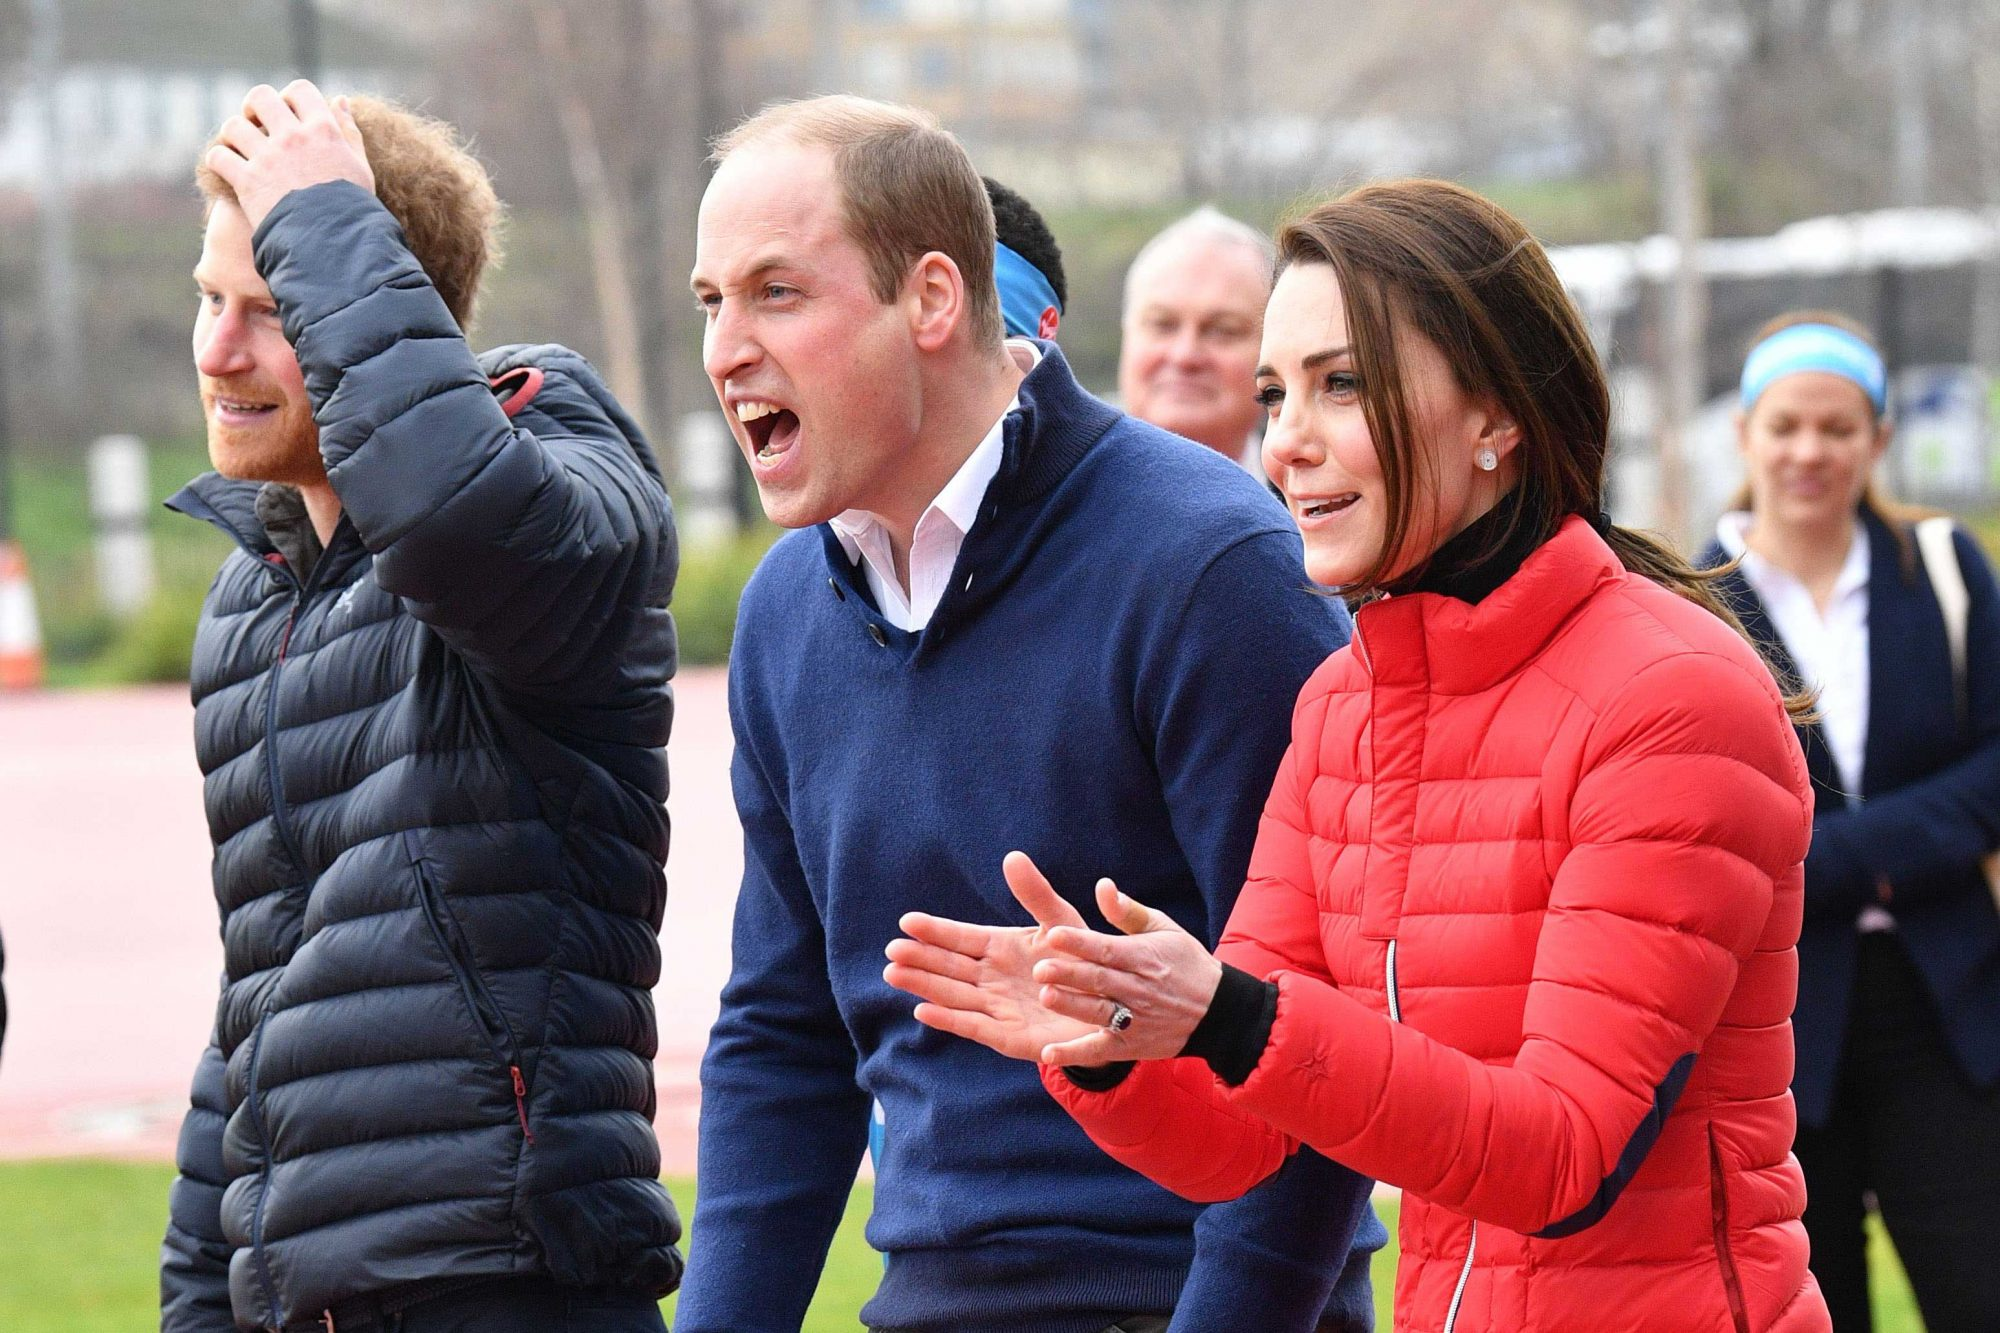 Mandatory Credit: Photo by Tim Rooke/REX/Shutterstock (8269204aj) Prince Harrym, Prince William and Catherine Duchess of Cambridge cheers on participants during training day Royals visit Team Heads Together London Marathon training day, Queen Elizabeth Olympic Park, London, UK - 05 Feb 2017 The Duke and Duchess of Cambridge and Prince Harry will attend a training day with those running for Team Heads Together in the London Marathon at the Queen Elizabeth Olympic Park